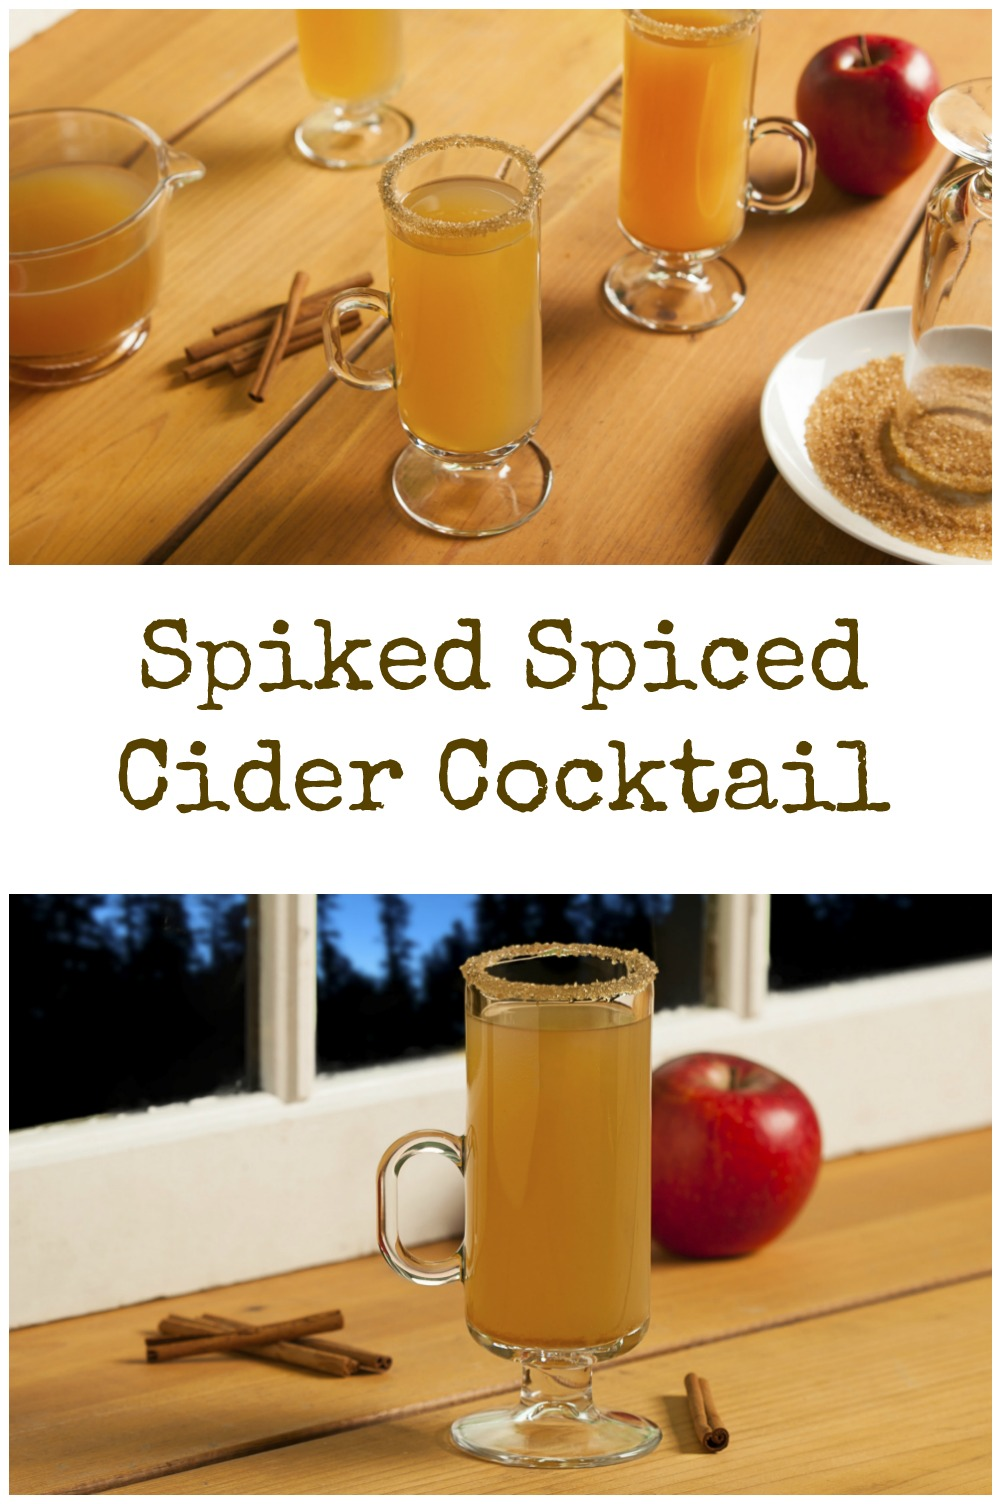 Try a Spiked Spiced Cider Cocktail that's perfect for Autumn.